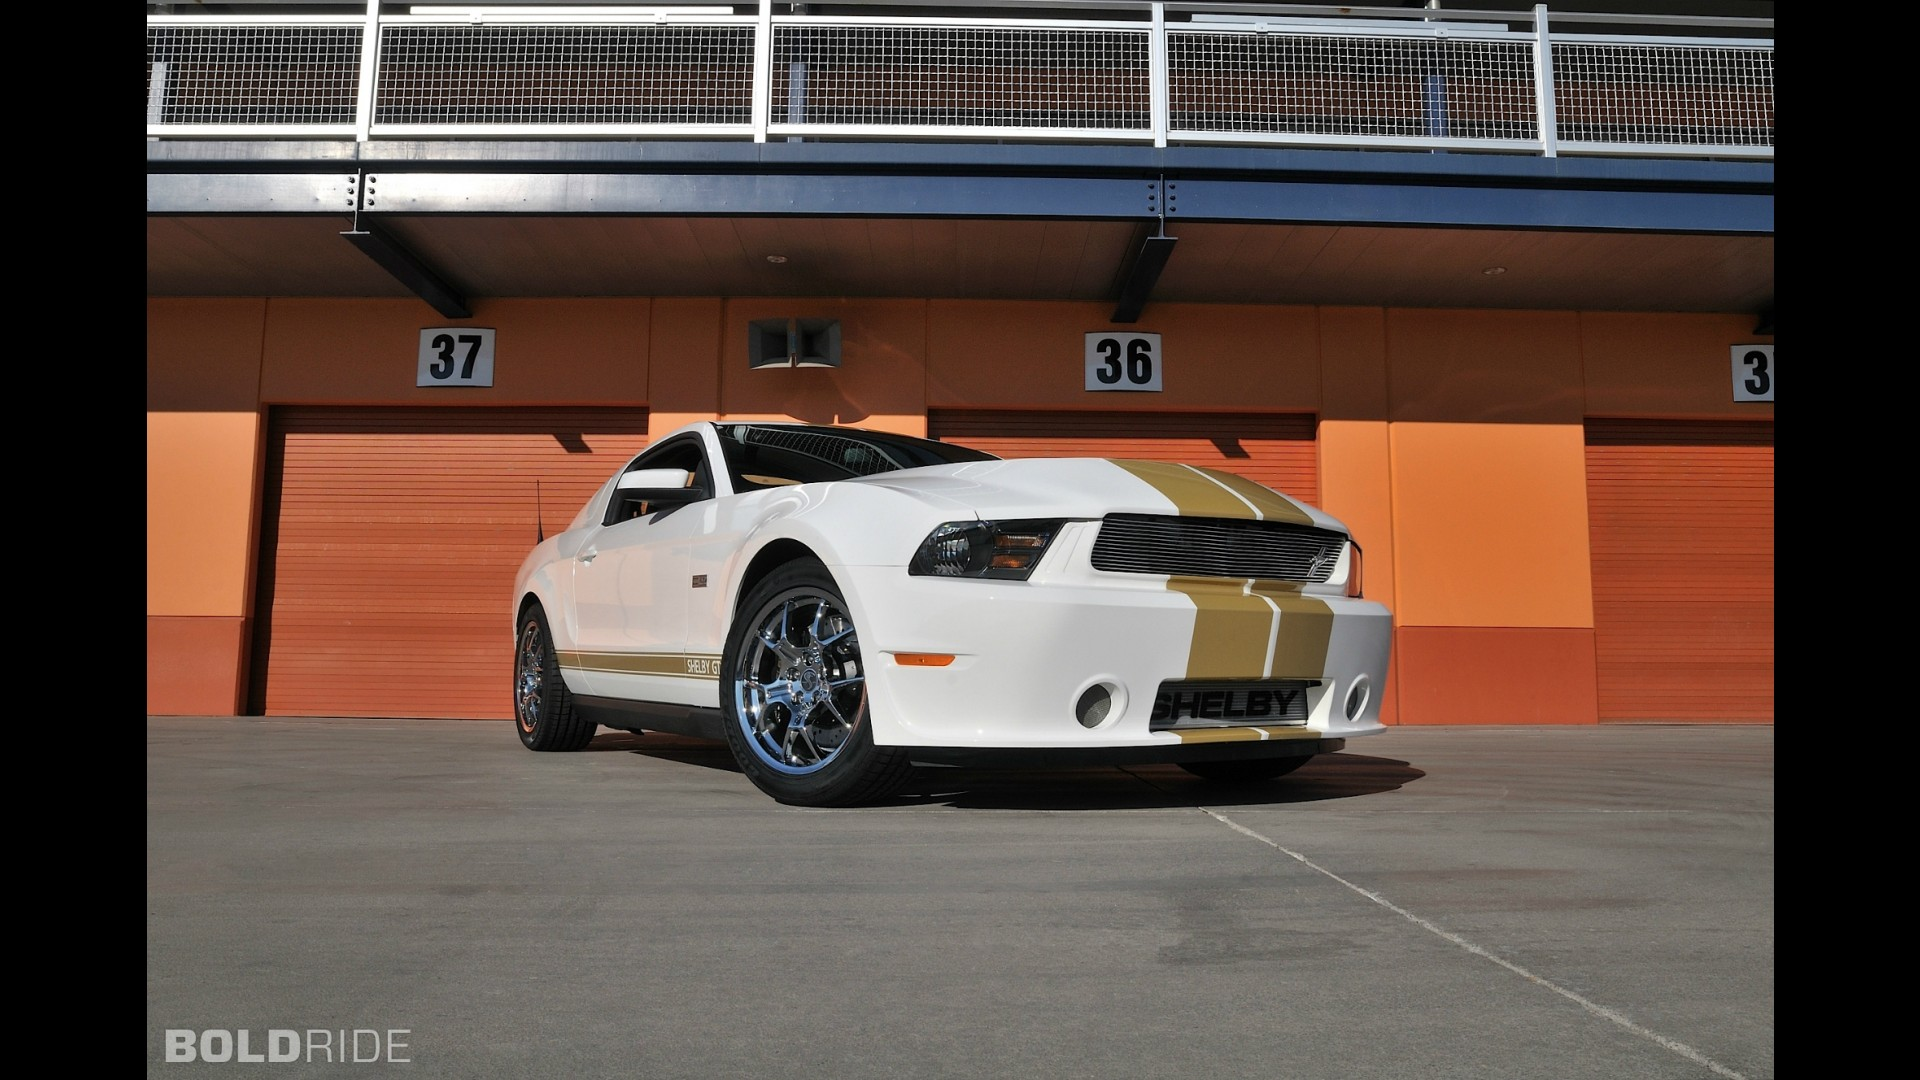 Ford Mustang Shelby GTS 50th Anniversary Edition